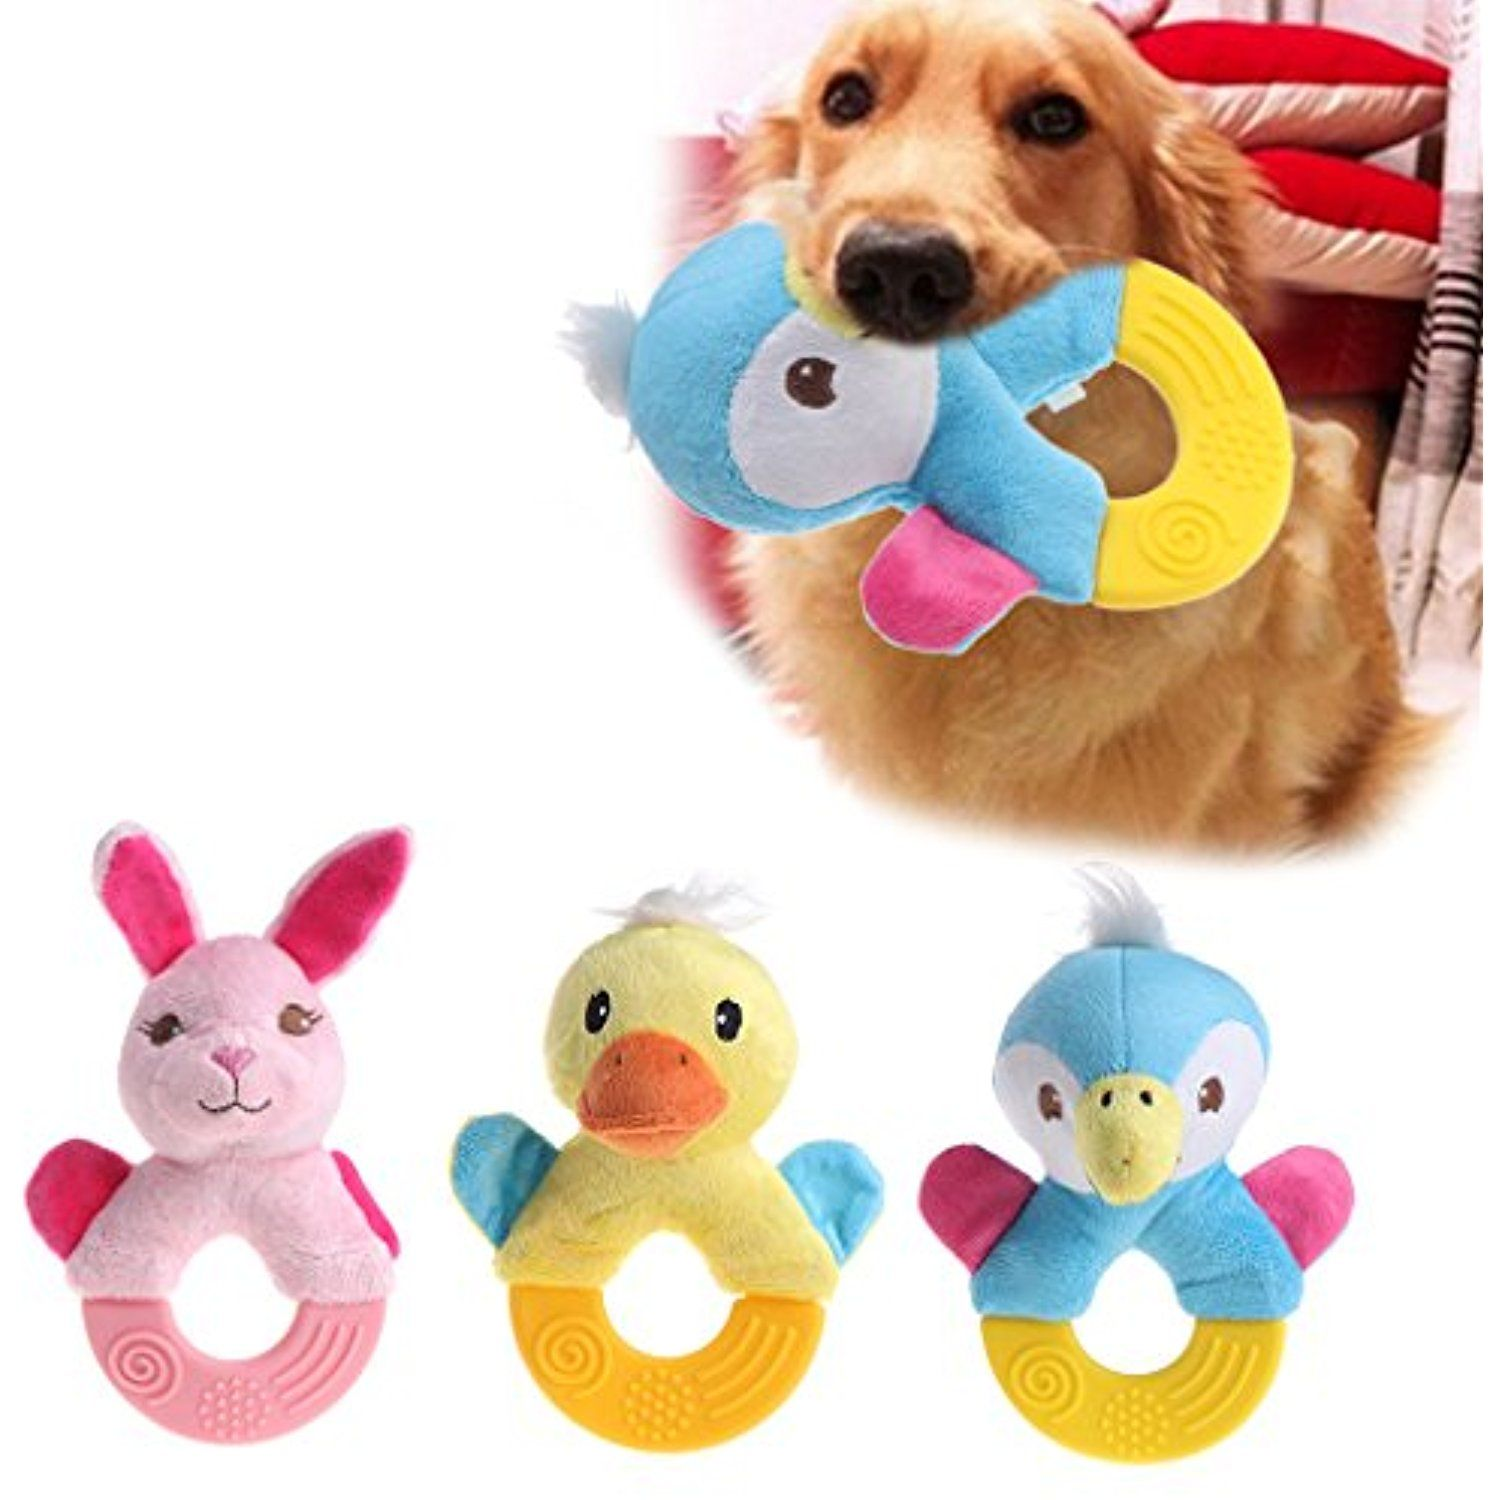 Nnda Co Squeaky Dog Toy 1pc Squeaker Teething Clean Toy Grinding